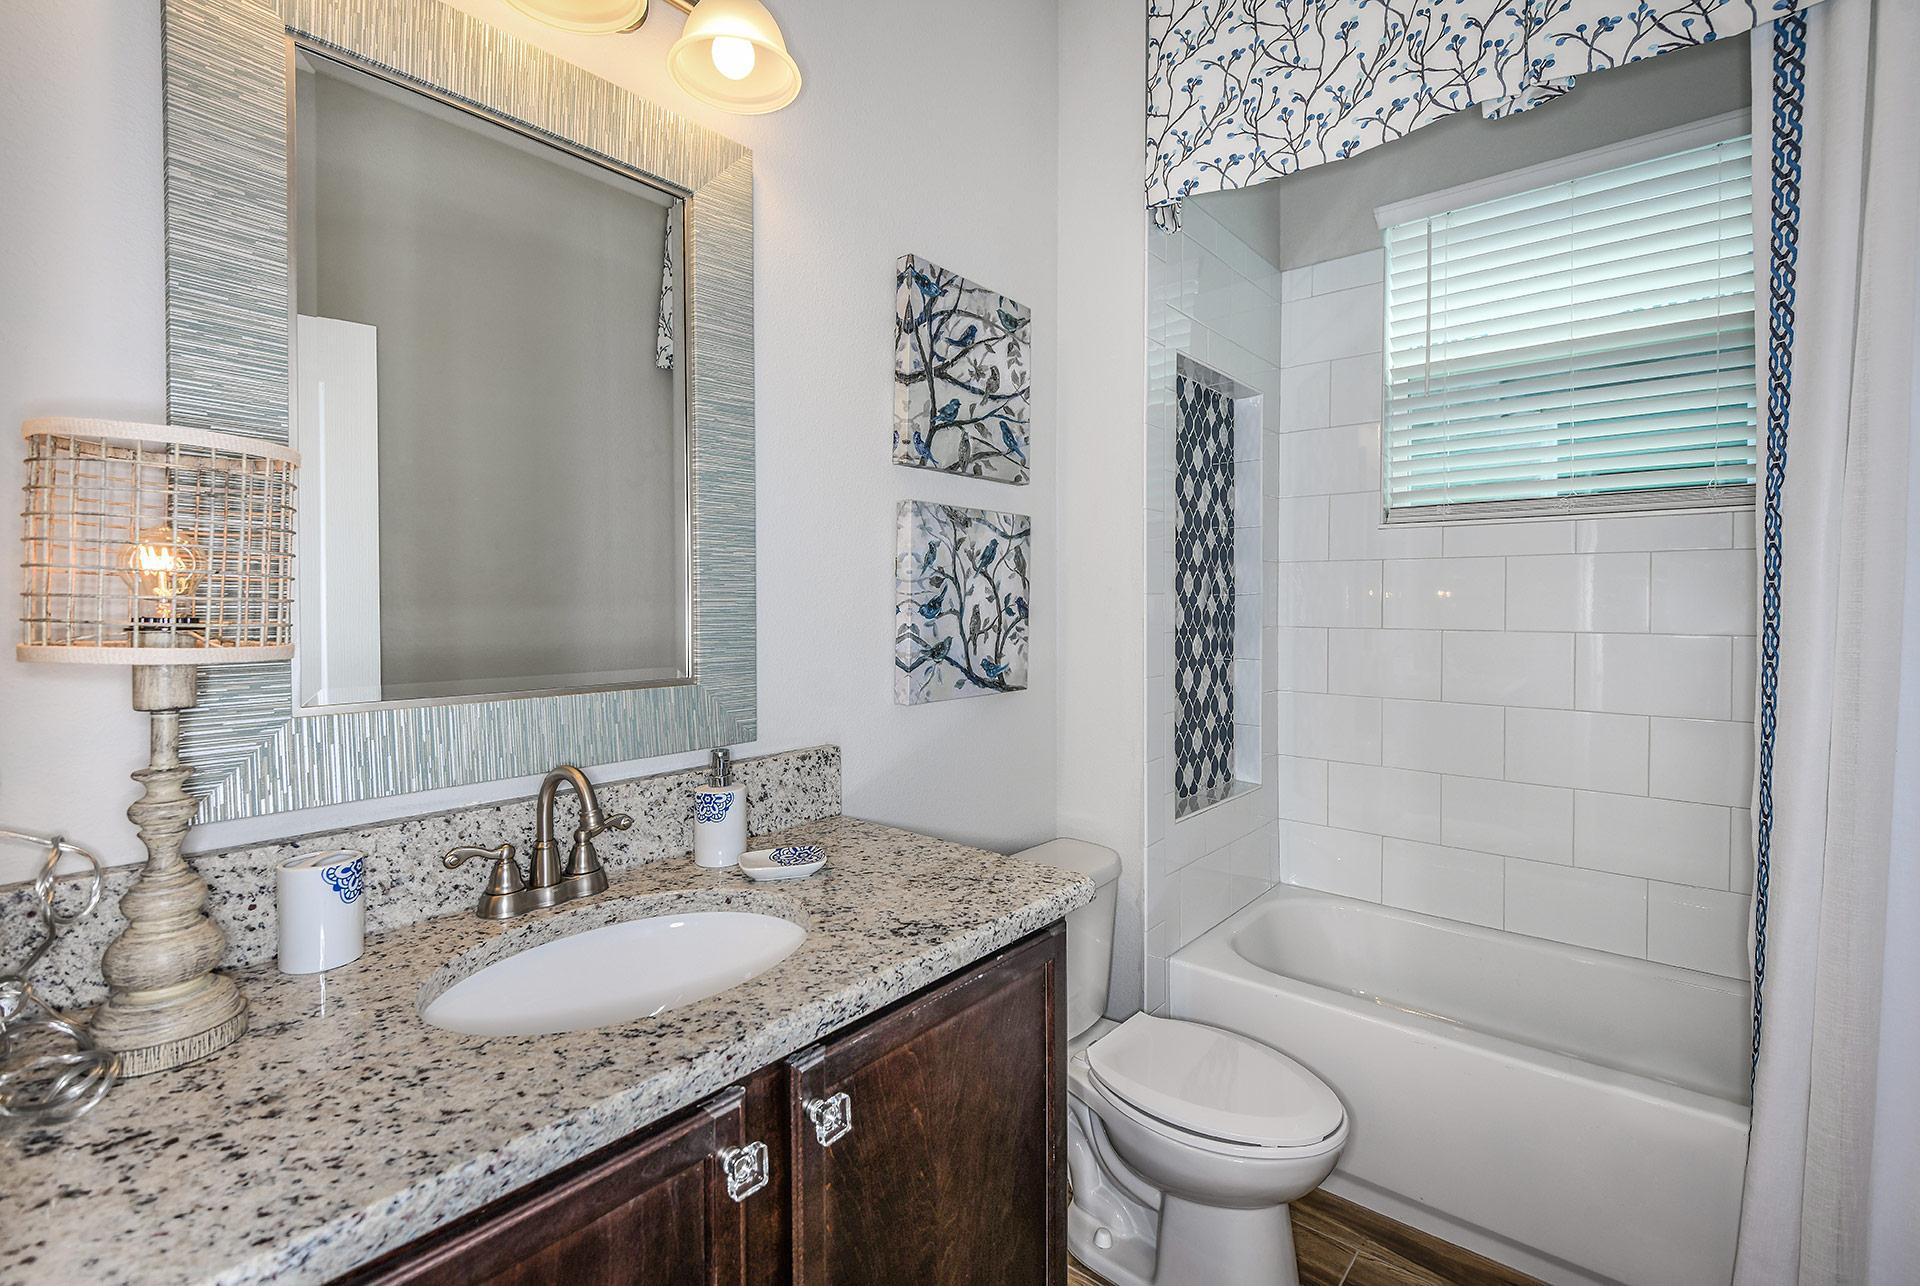 Bathroom featured in the Capri Del Lago By Mobley Homes in Tampa-St. Petersburg, FL